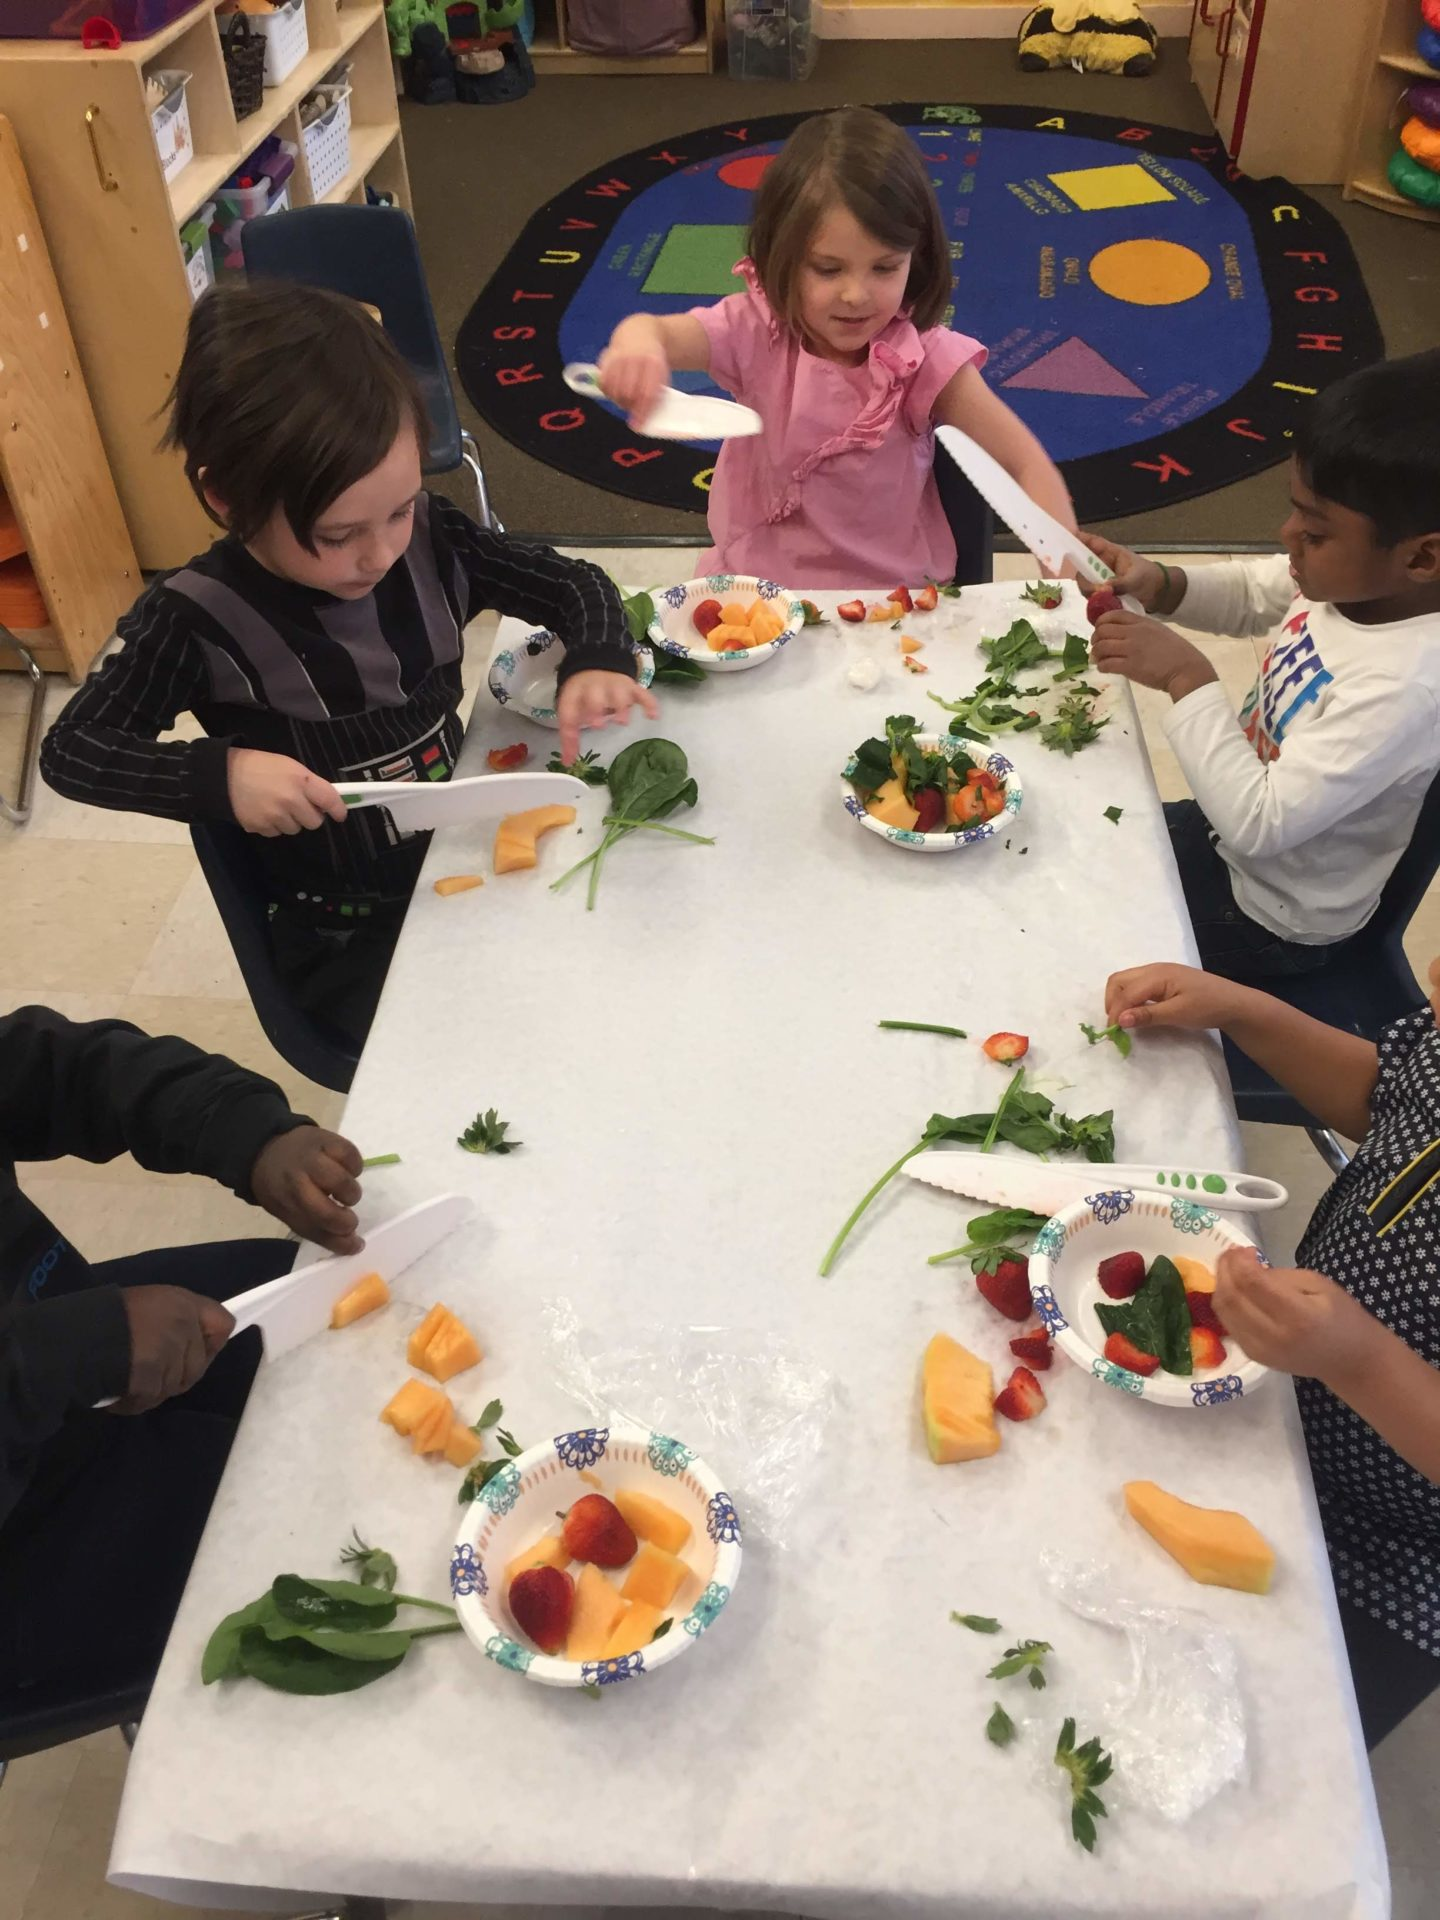 Children helping to prepare a nutritious meal at Children's Alley